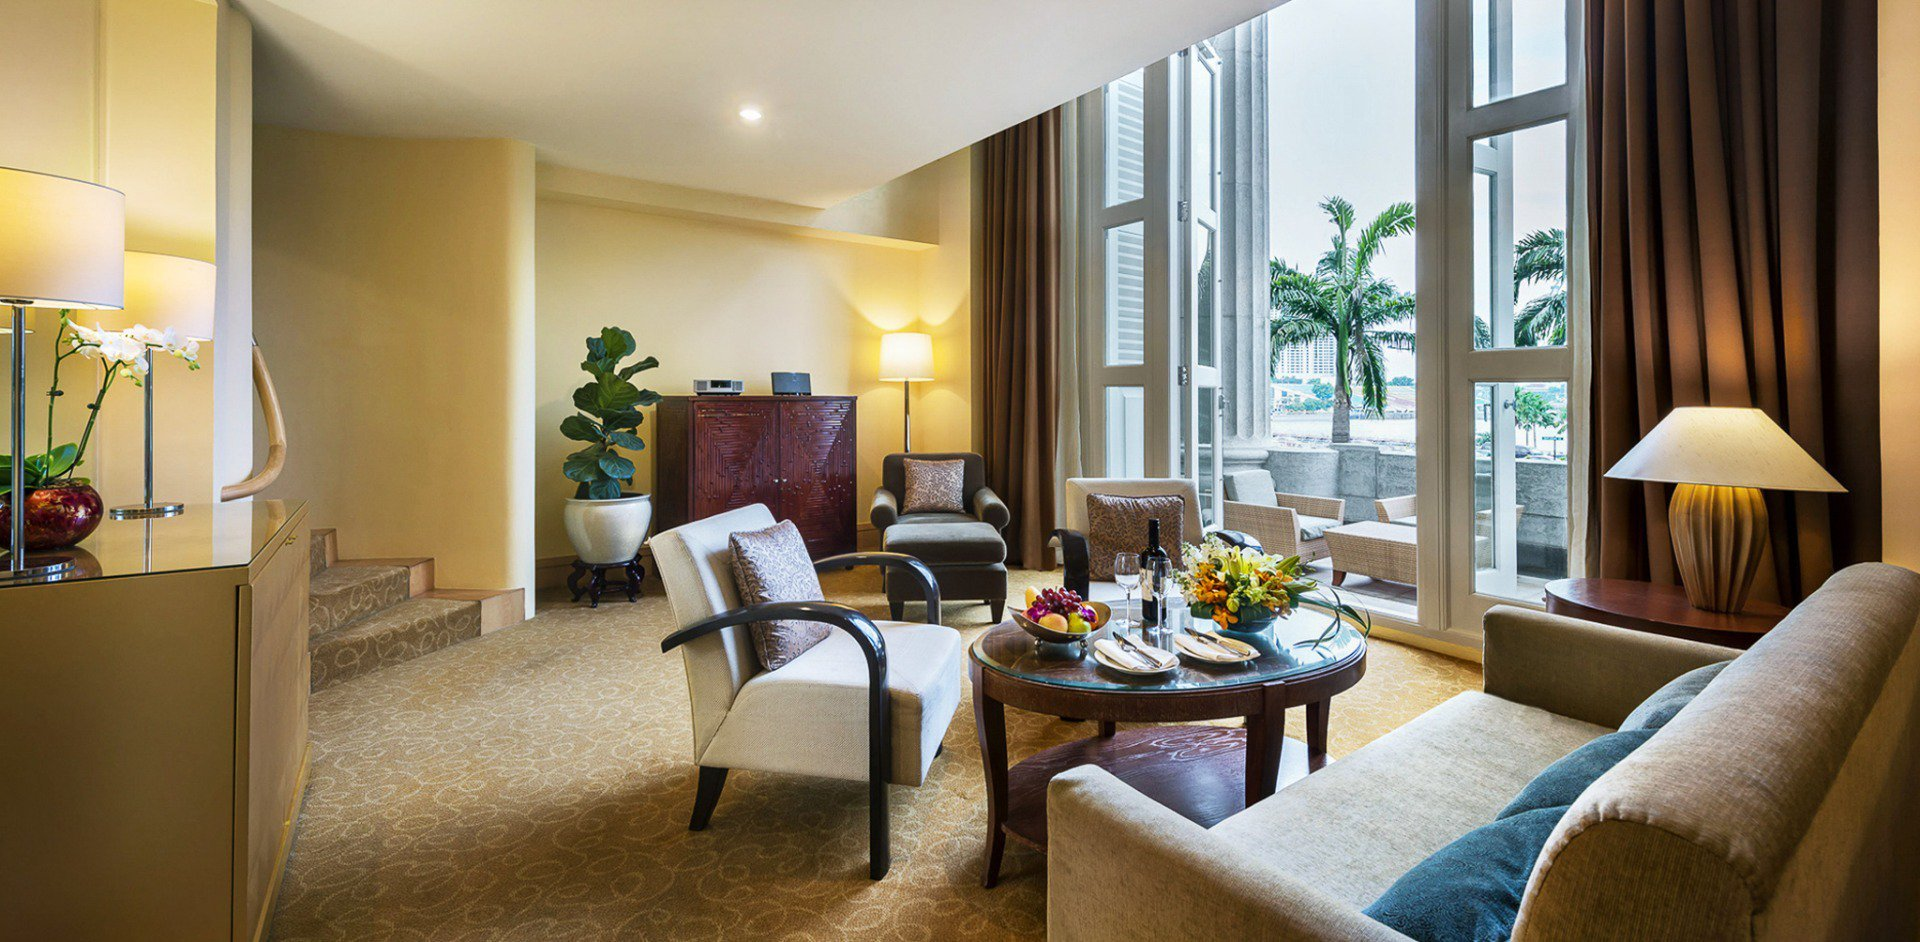 Stay in a suite at The Fullerton Hotel Singapore from $1180 for two nights